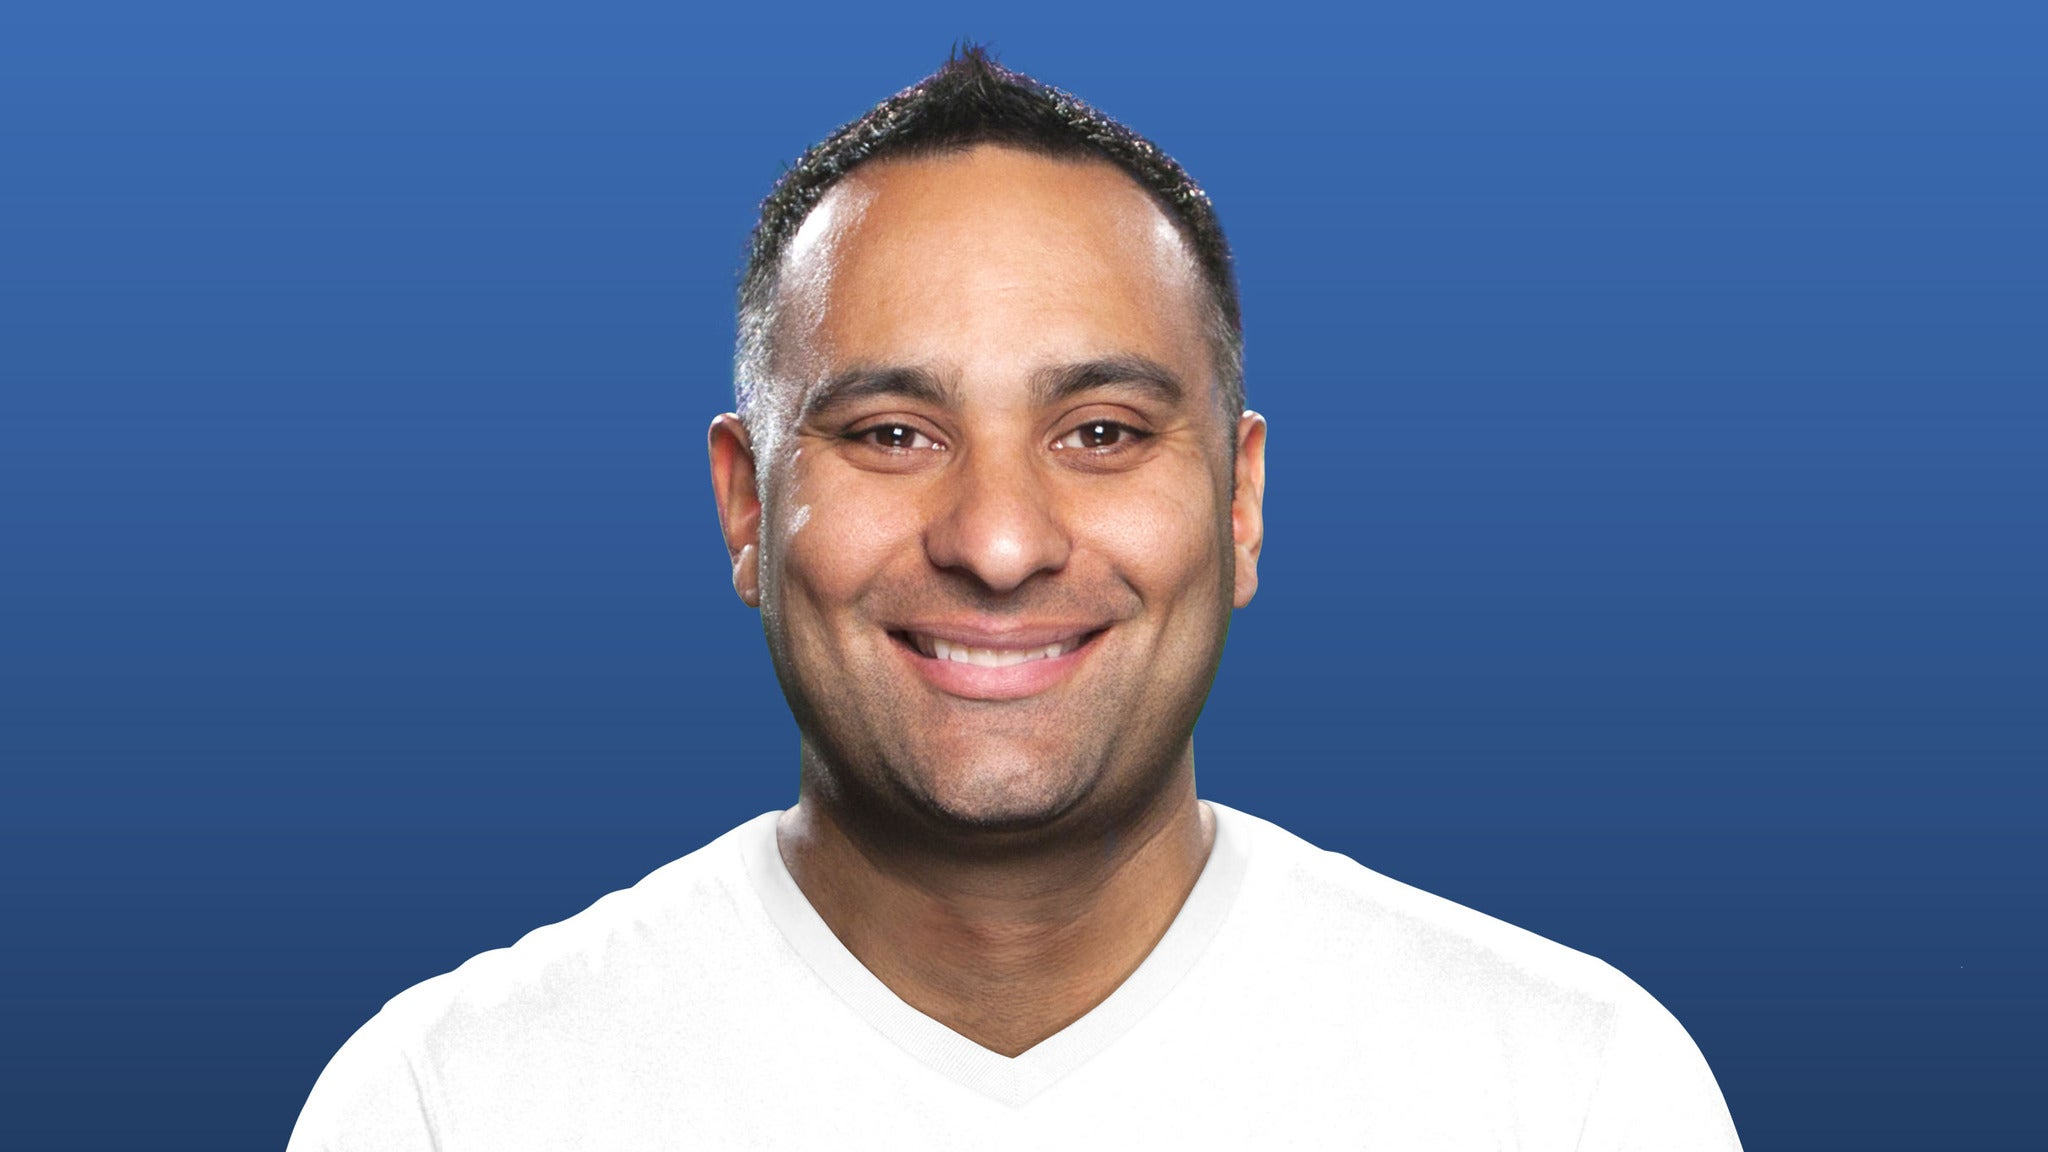 SORRY, THIS EVENT IS NO LONGER ACTIVE<br>Russell Peters at Brea Improv - Brea, CA 92821